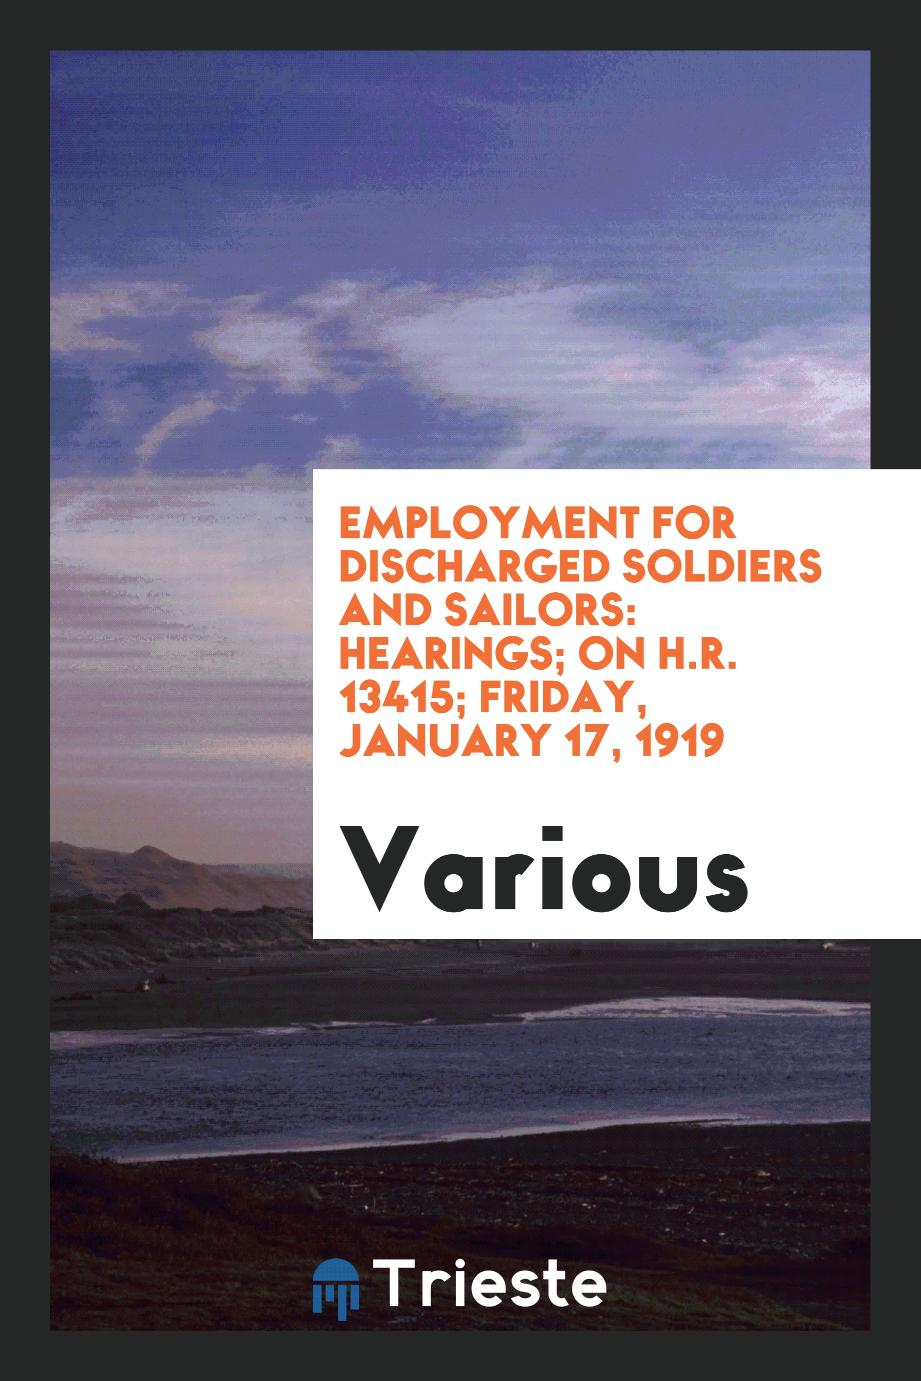 Employment for Discharged Soldiers and Sailors: Hearings; on H.R. 13415; Friday, January 17, 1919